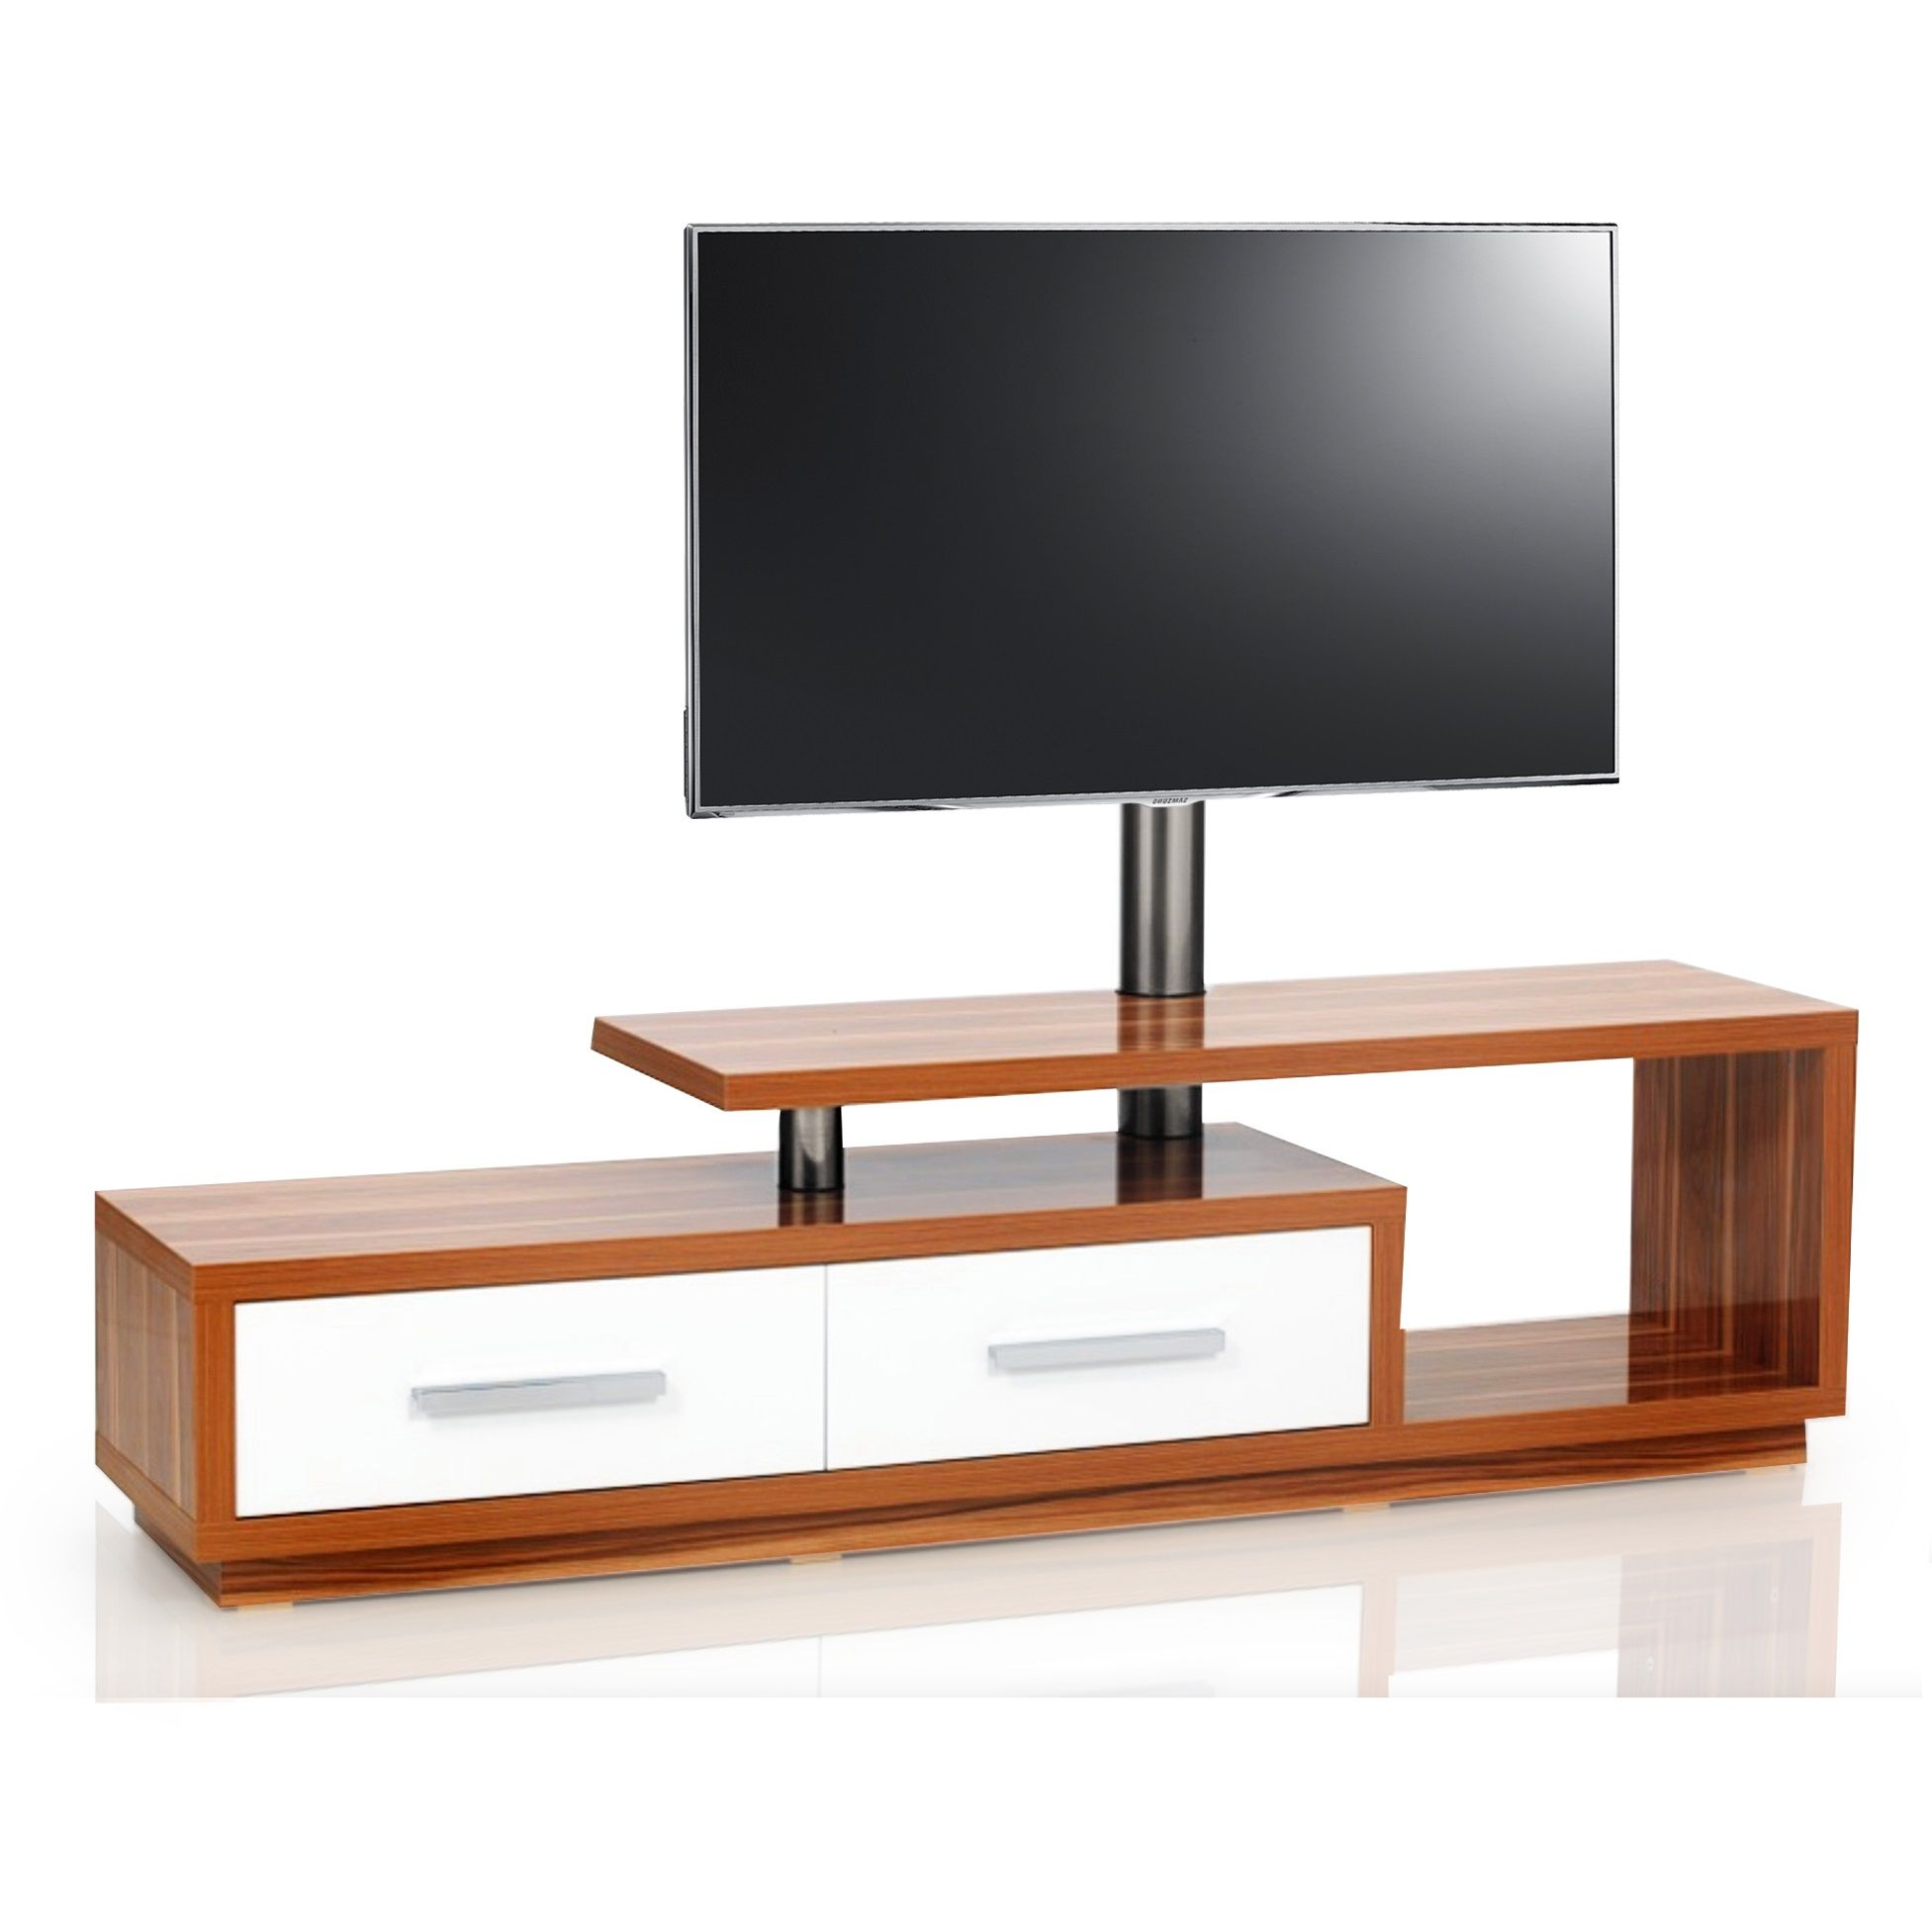 Best Table De Tv Design Images Joshkrajcik Us Joshkrajcik Us # Meuble Tv Avec Support Tv